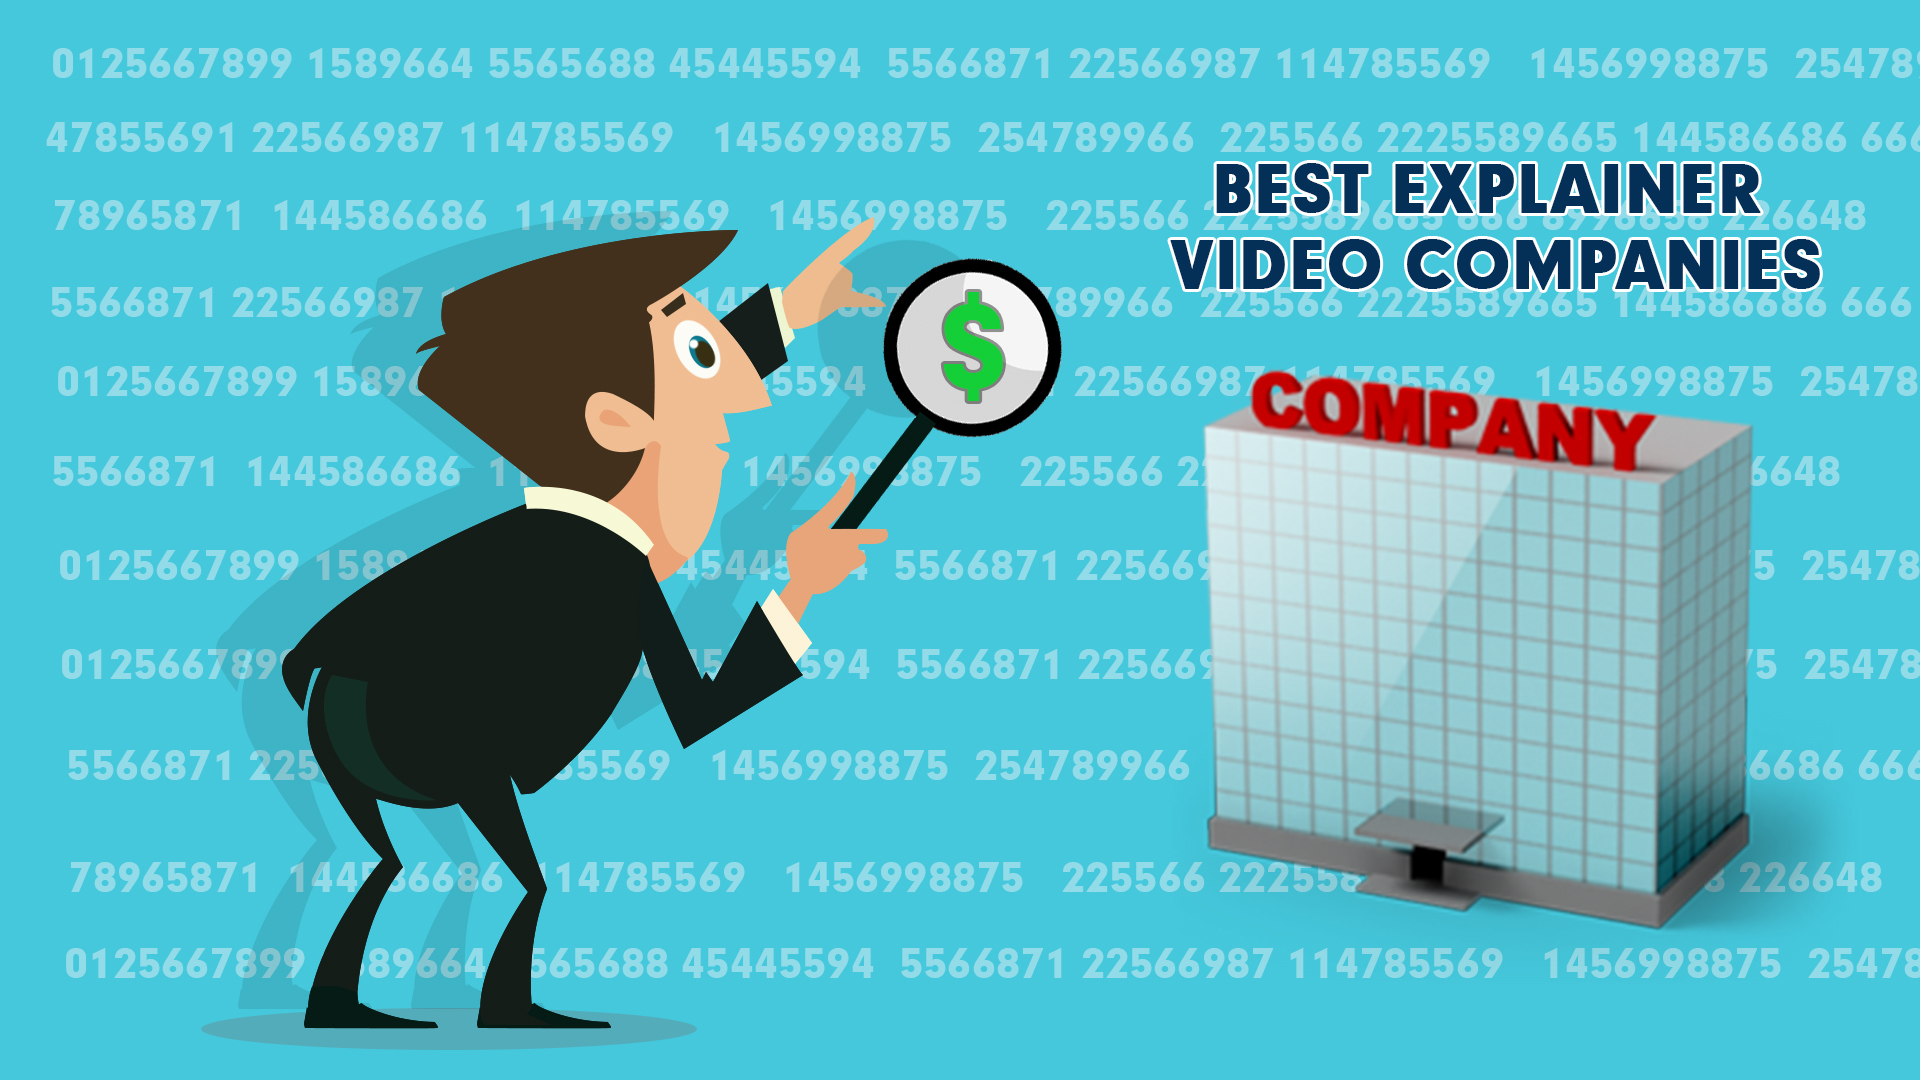 Best Explainer Video Companies